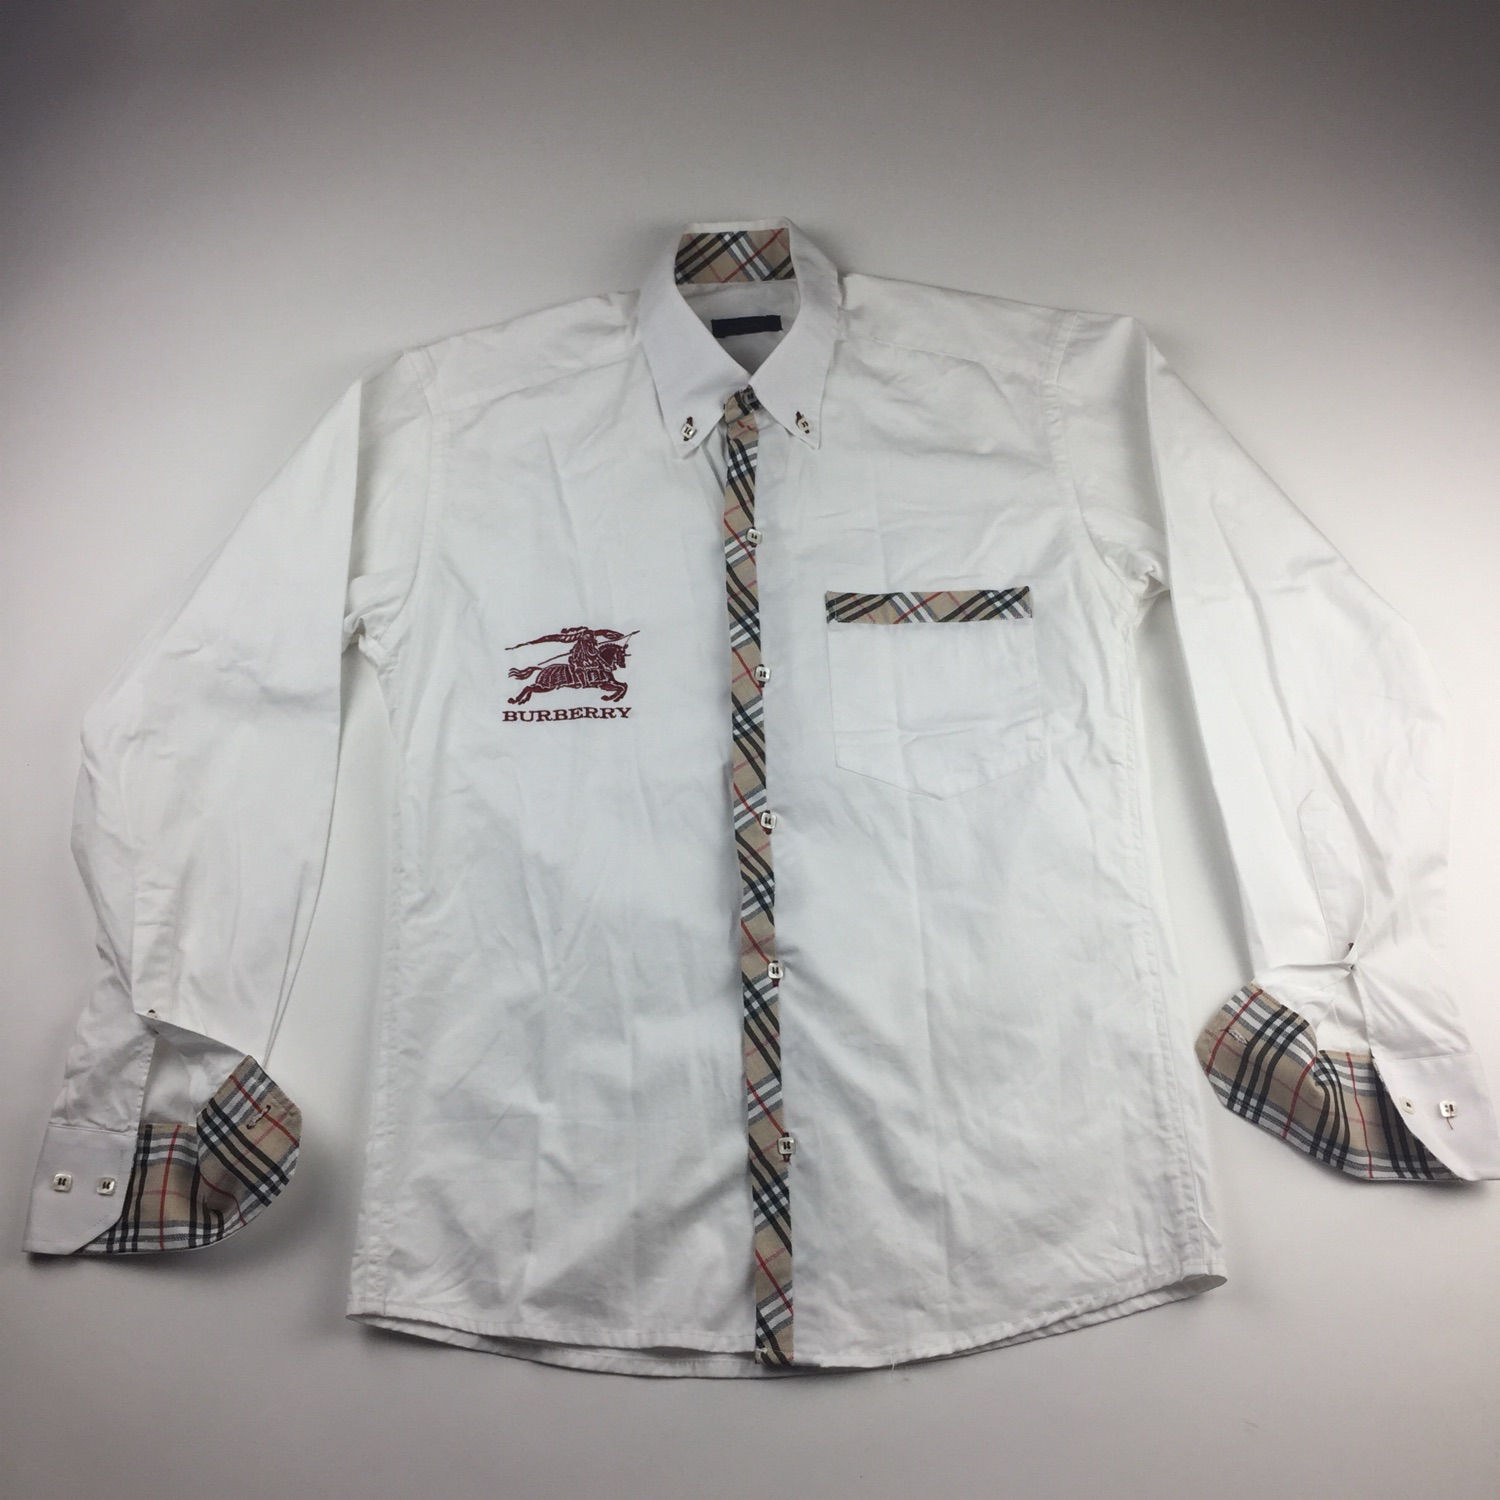 burberry shirt with red writing